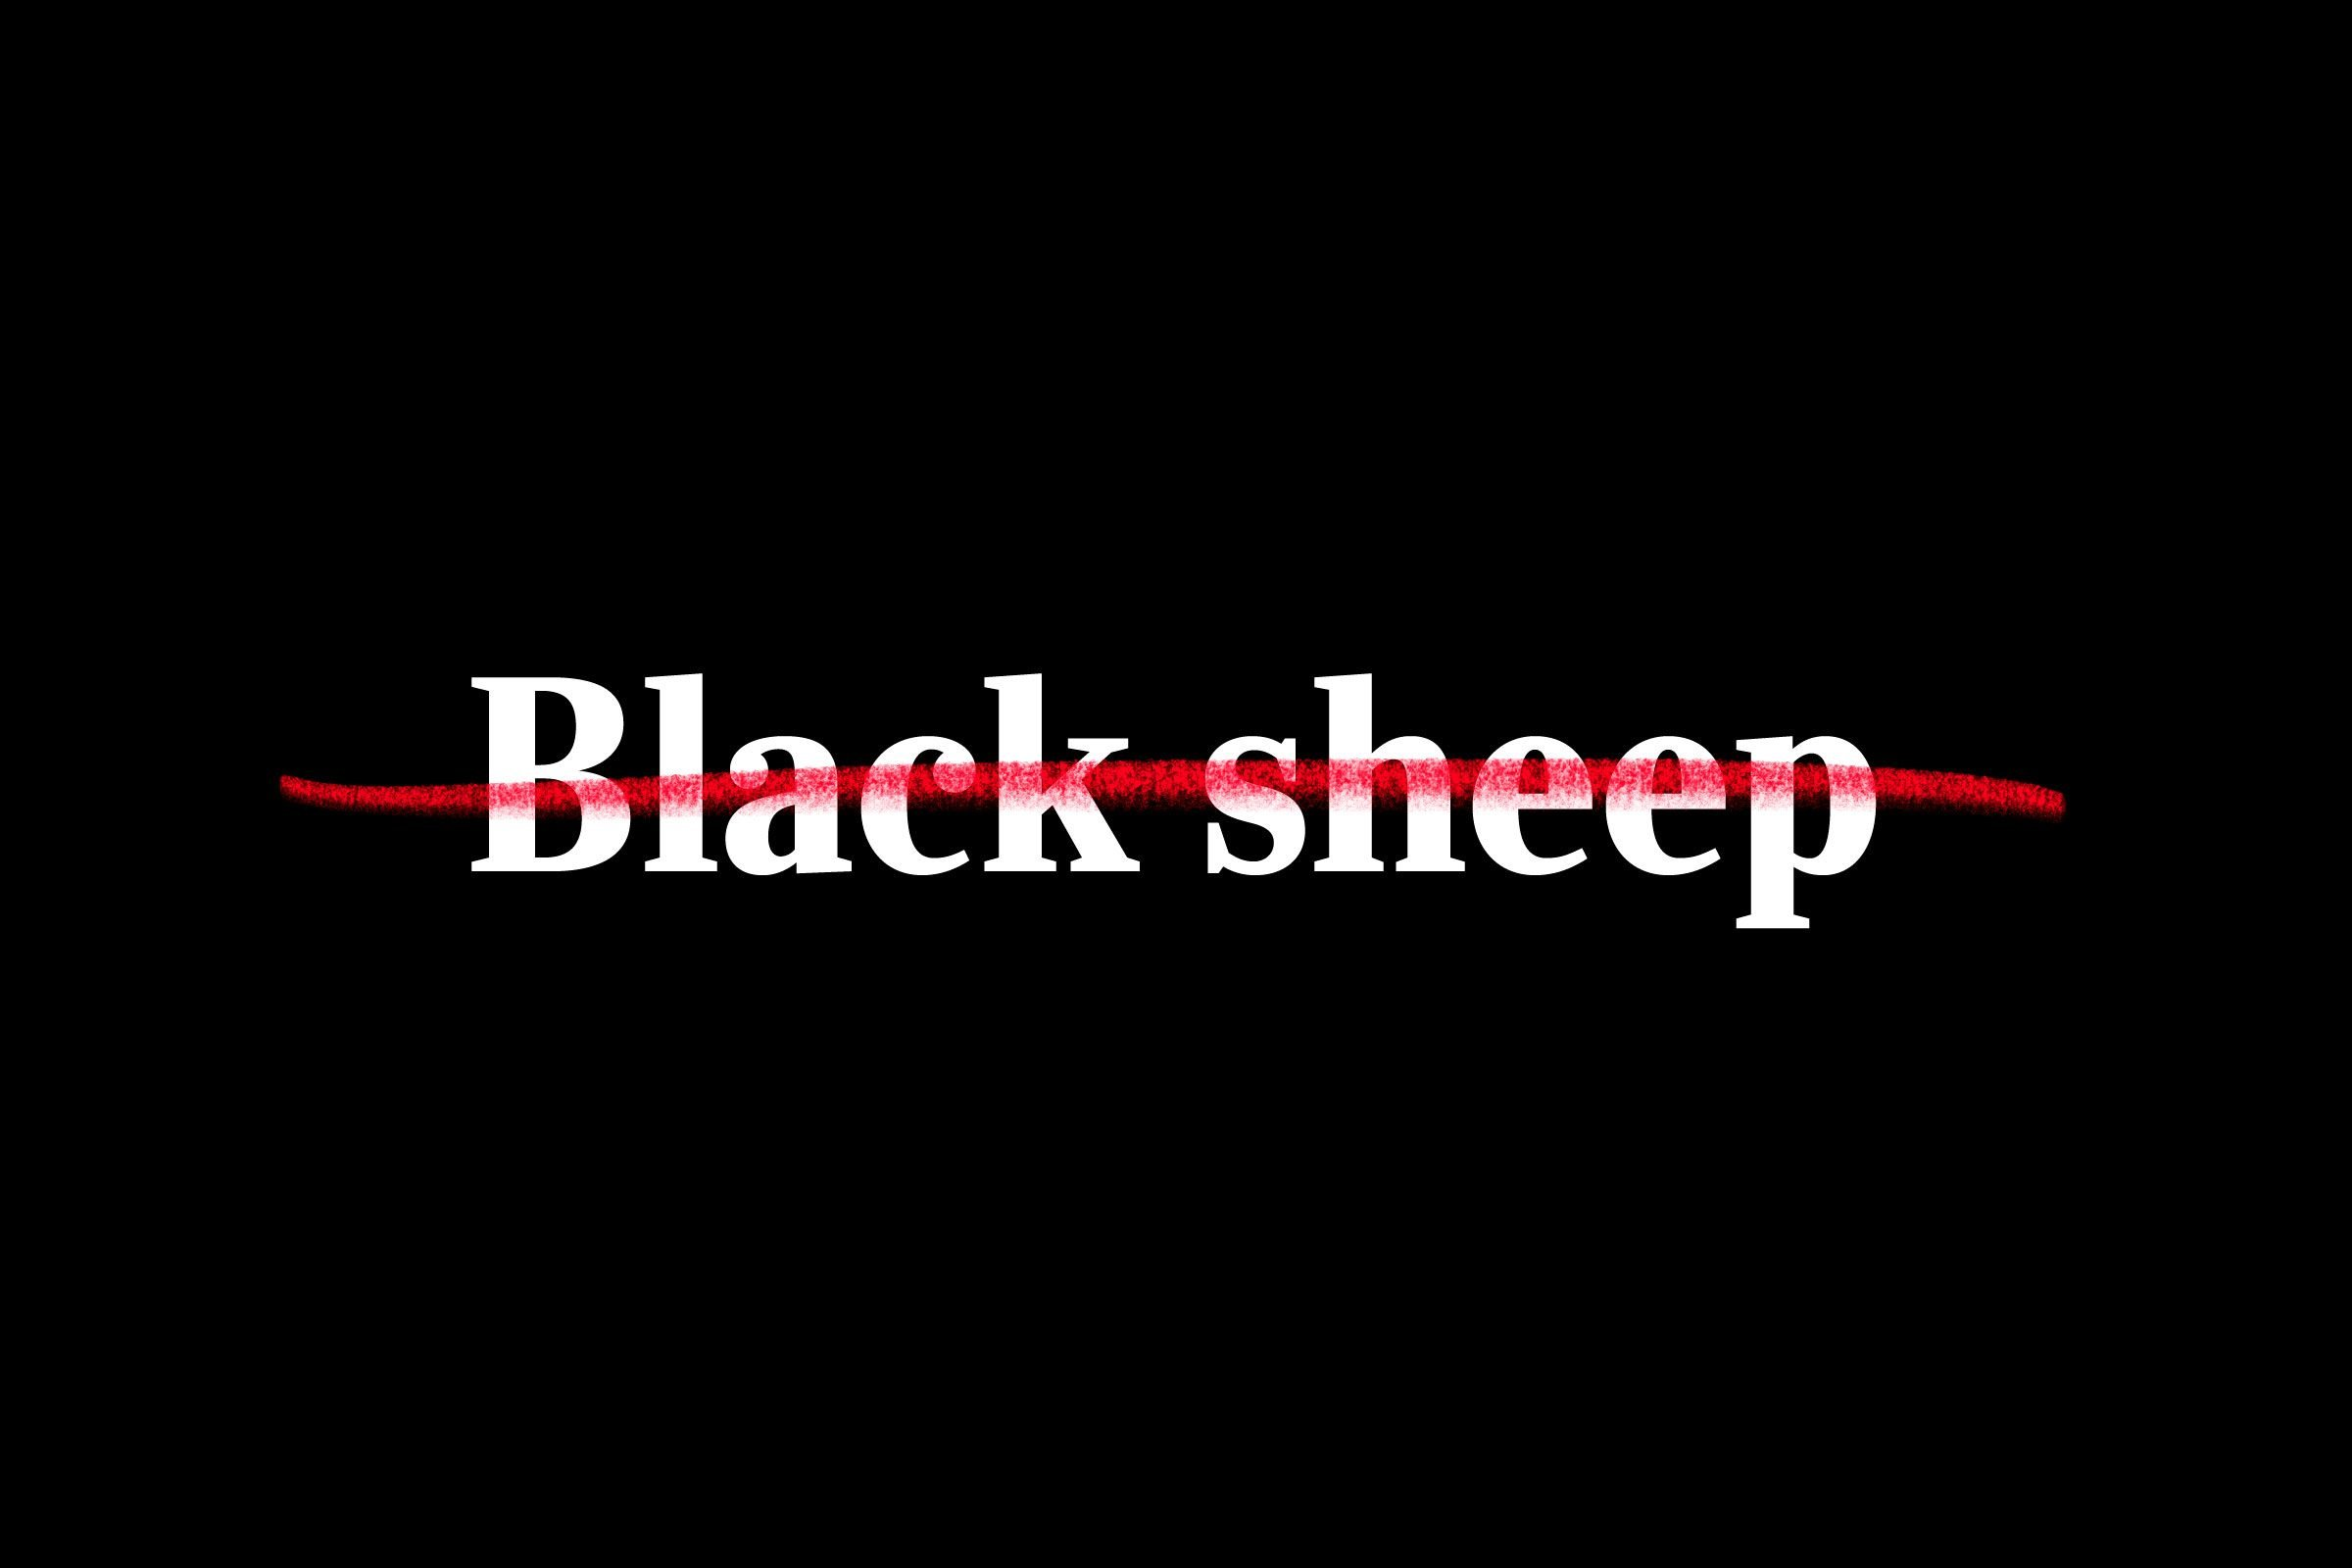 """black sheep"" crossed out"